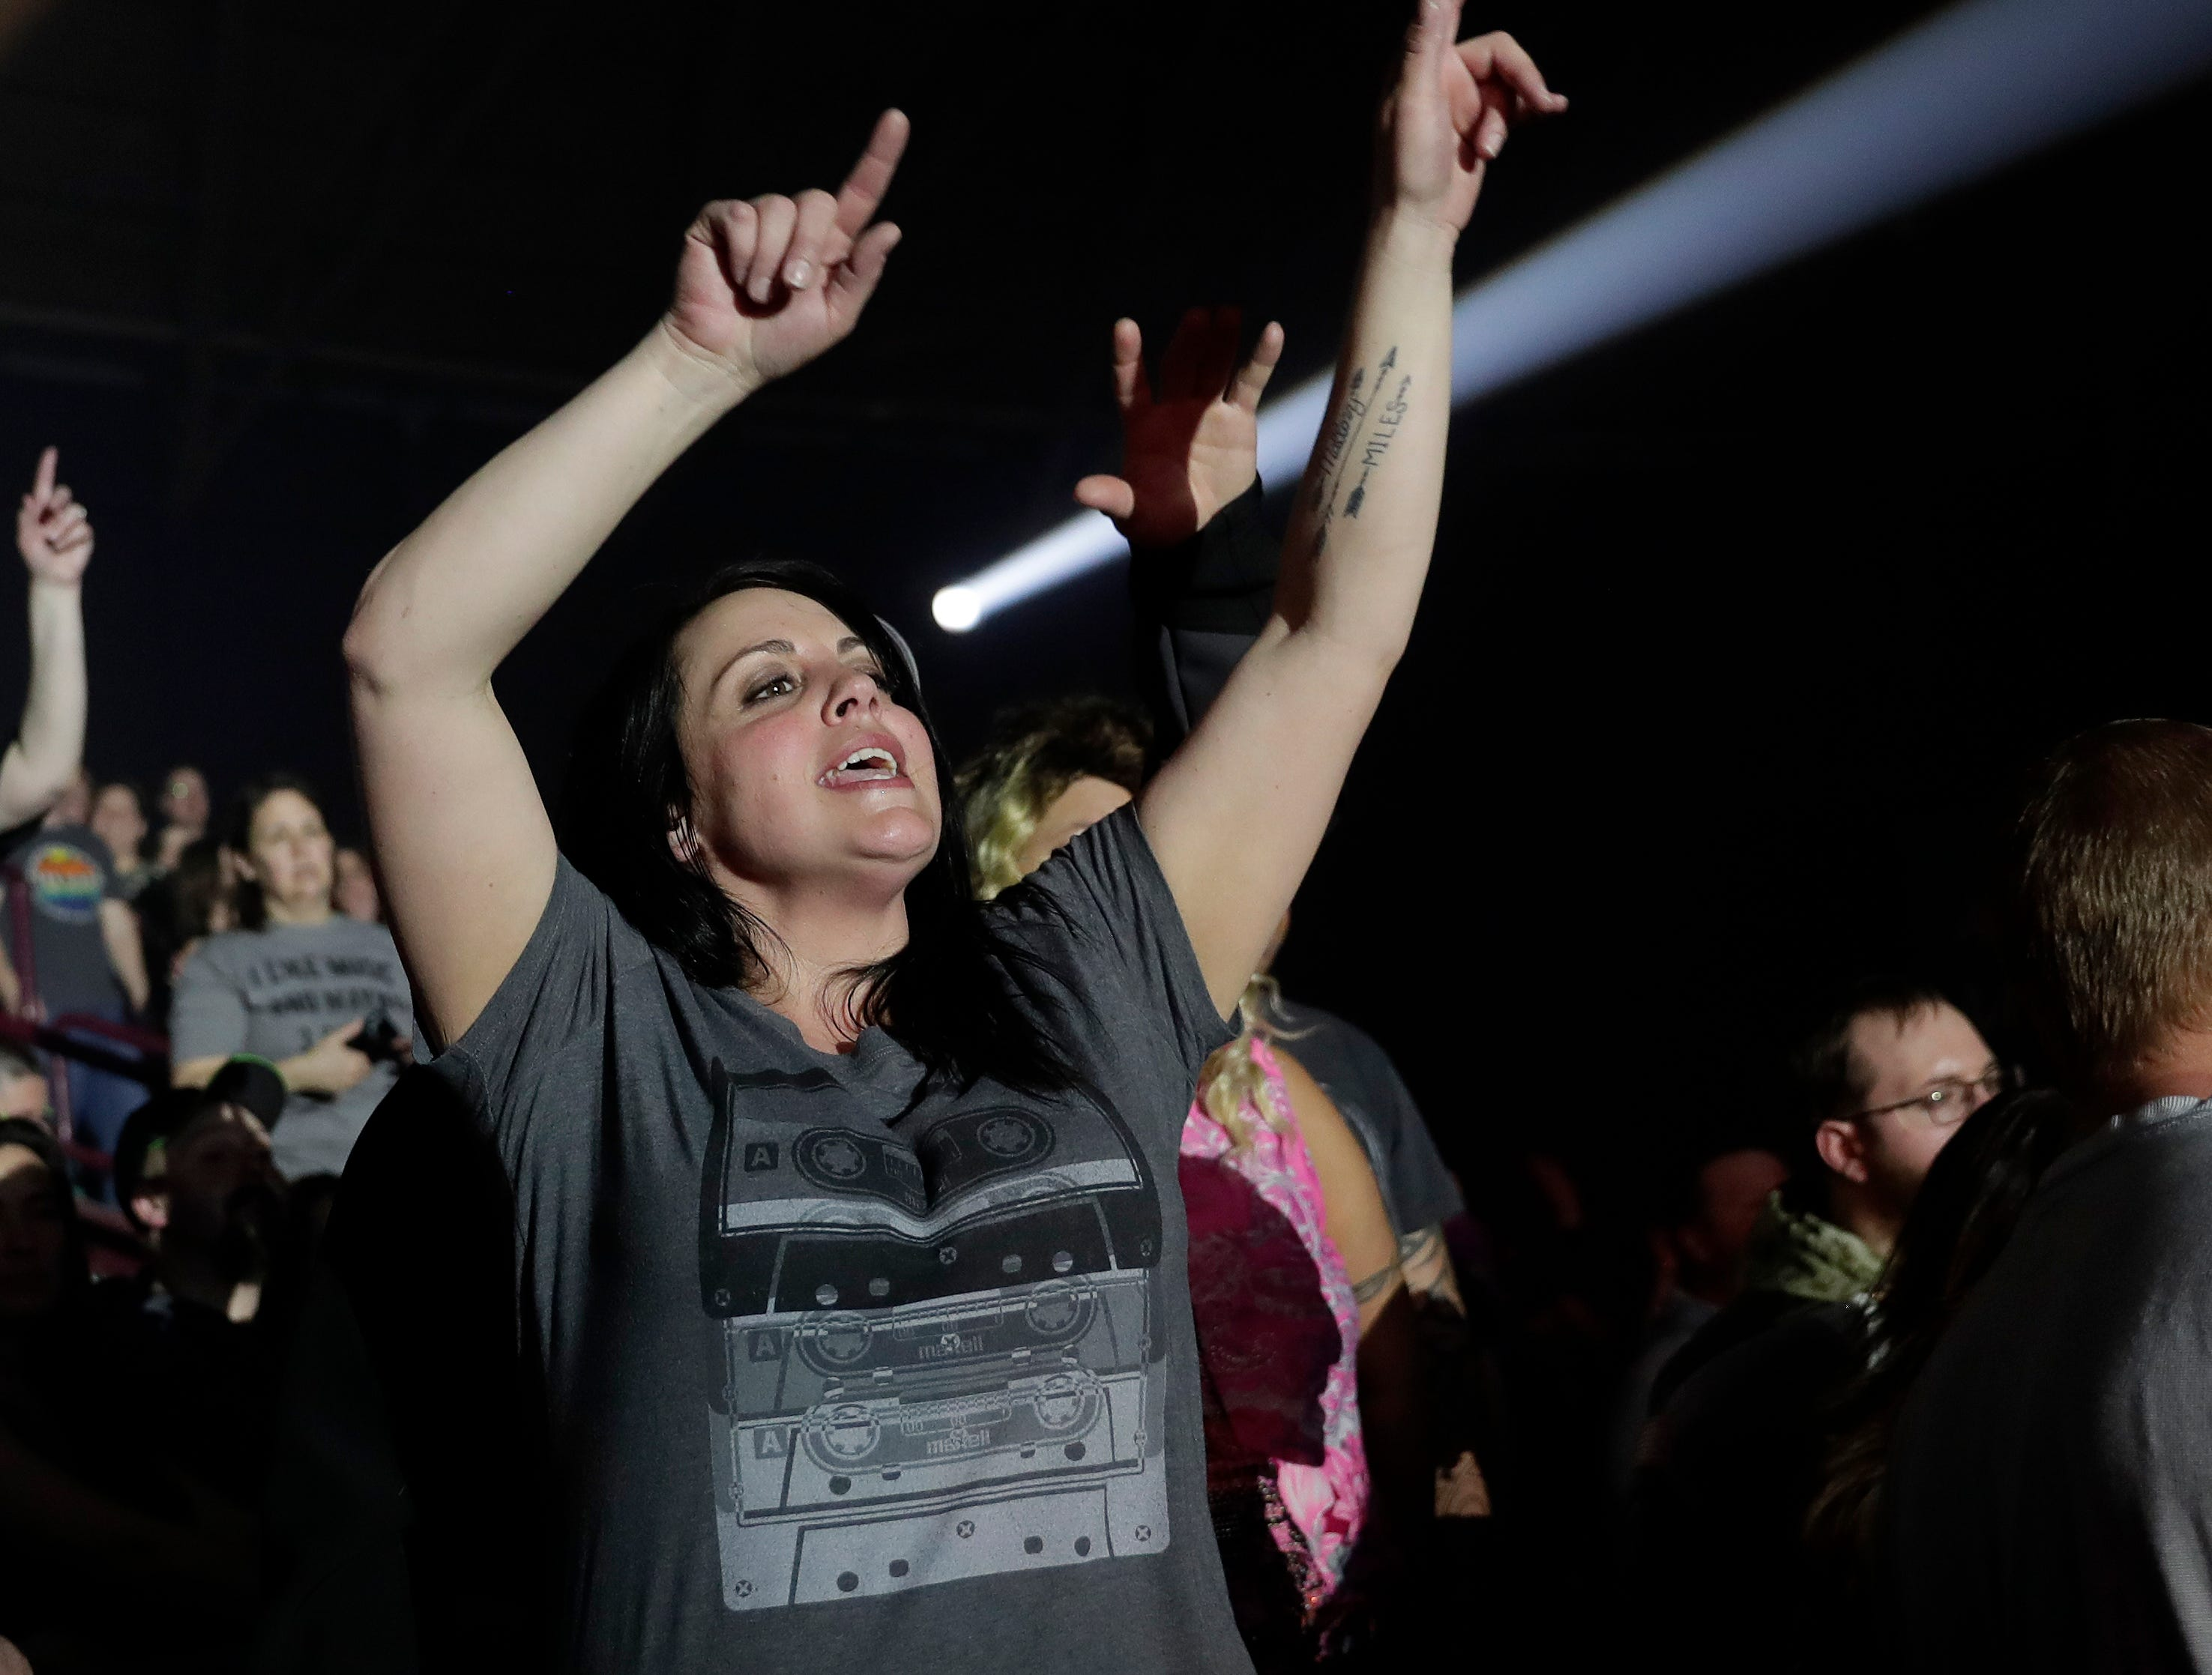 Fans watch Bret Michaels perform in front of a sold-out crowd on April 6, 2019 during the last concert at Brown County Veterans Memorial Arena before the building is torn down.